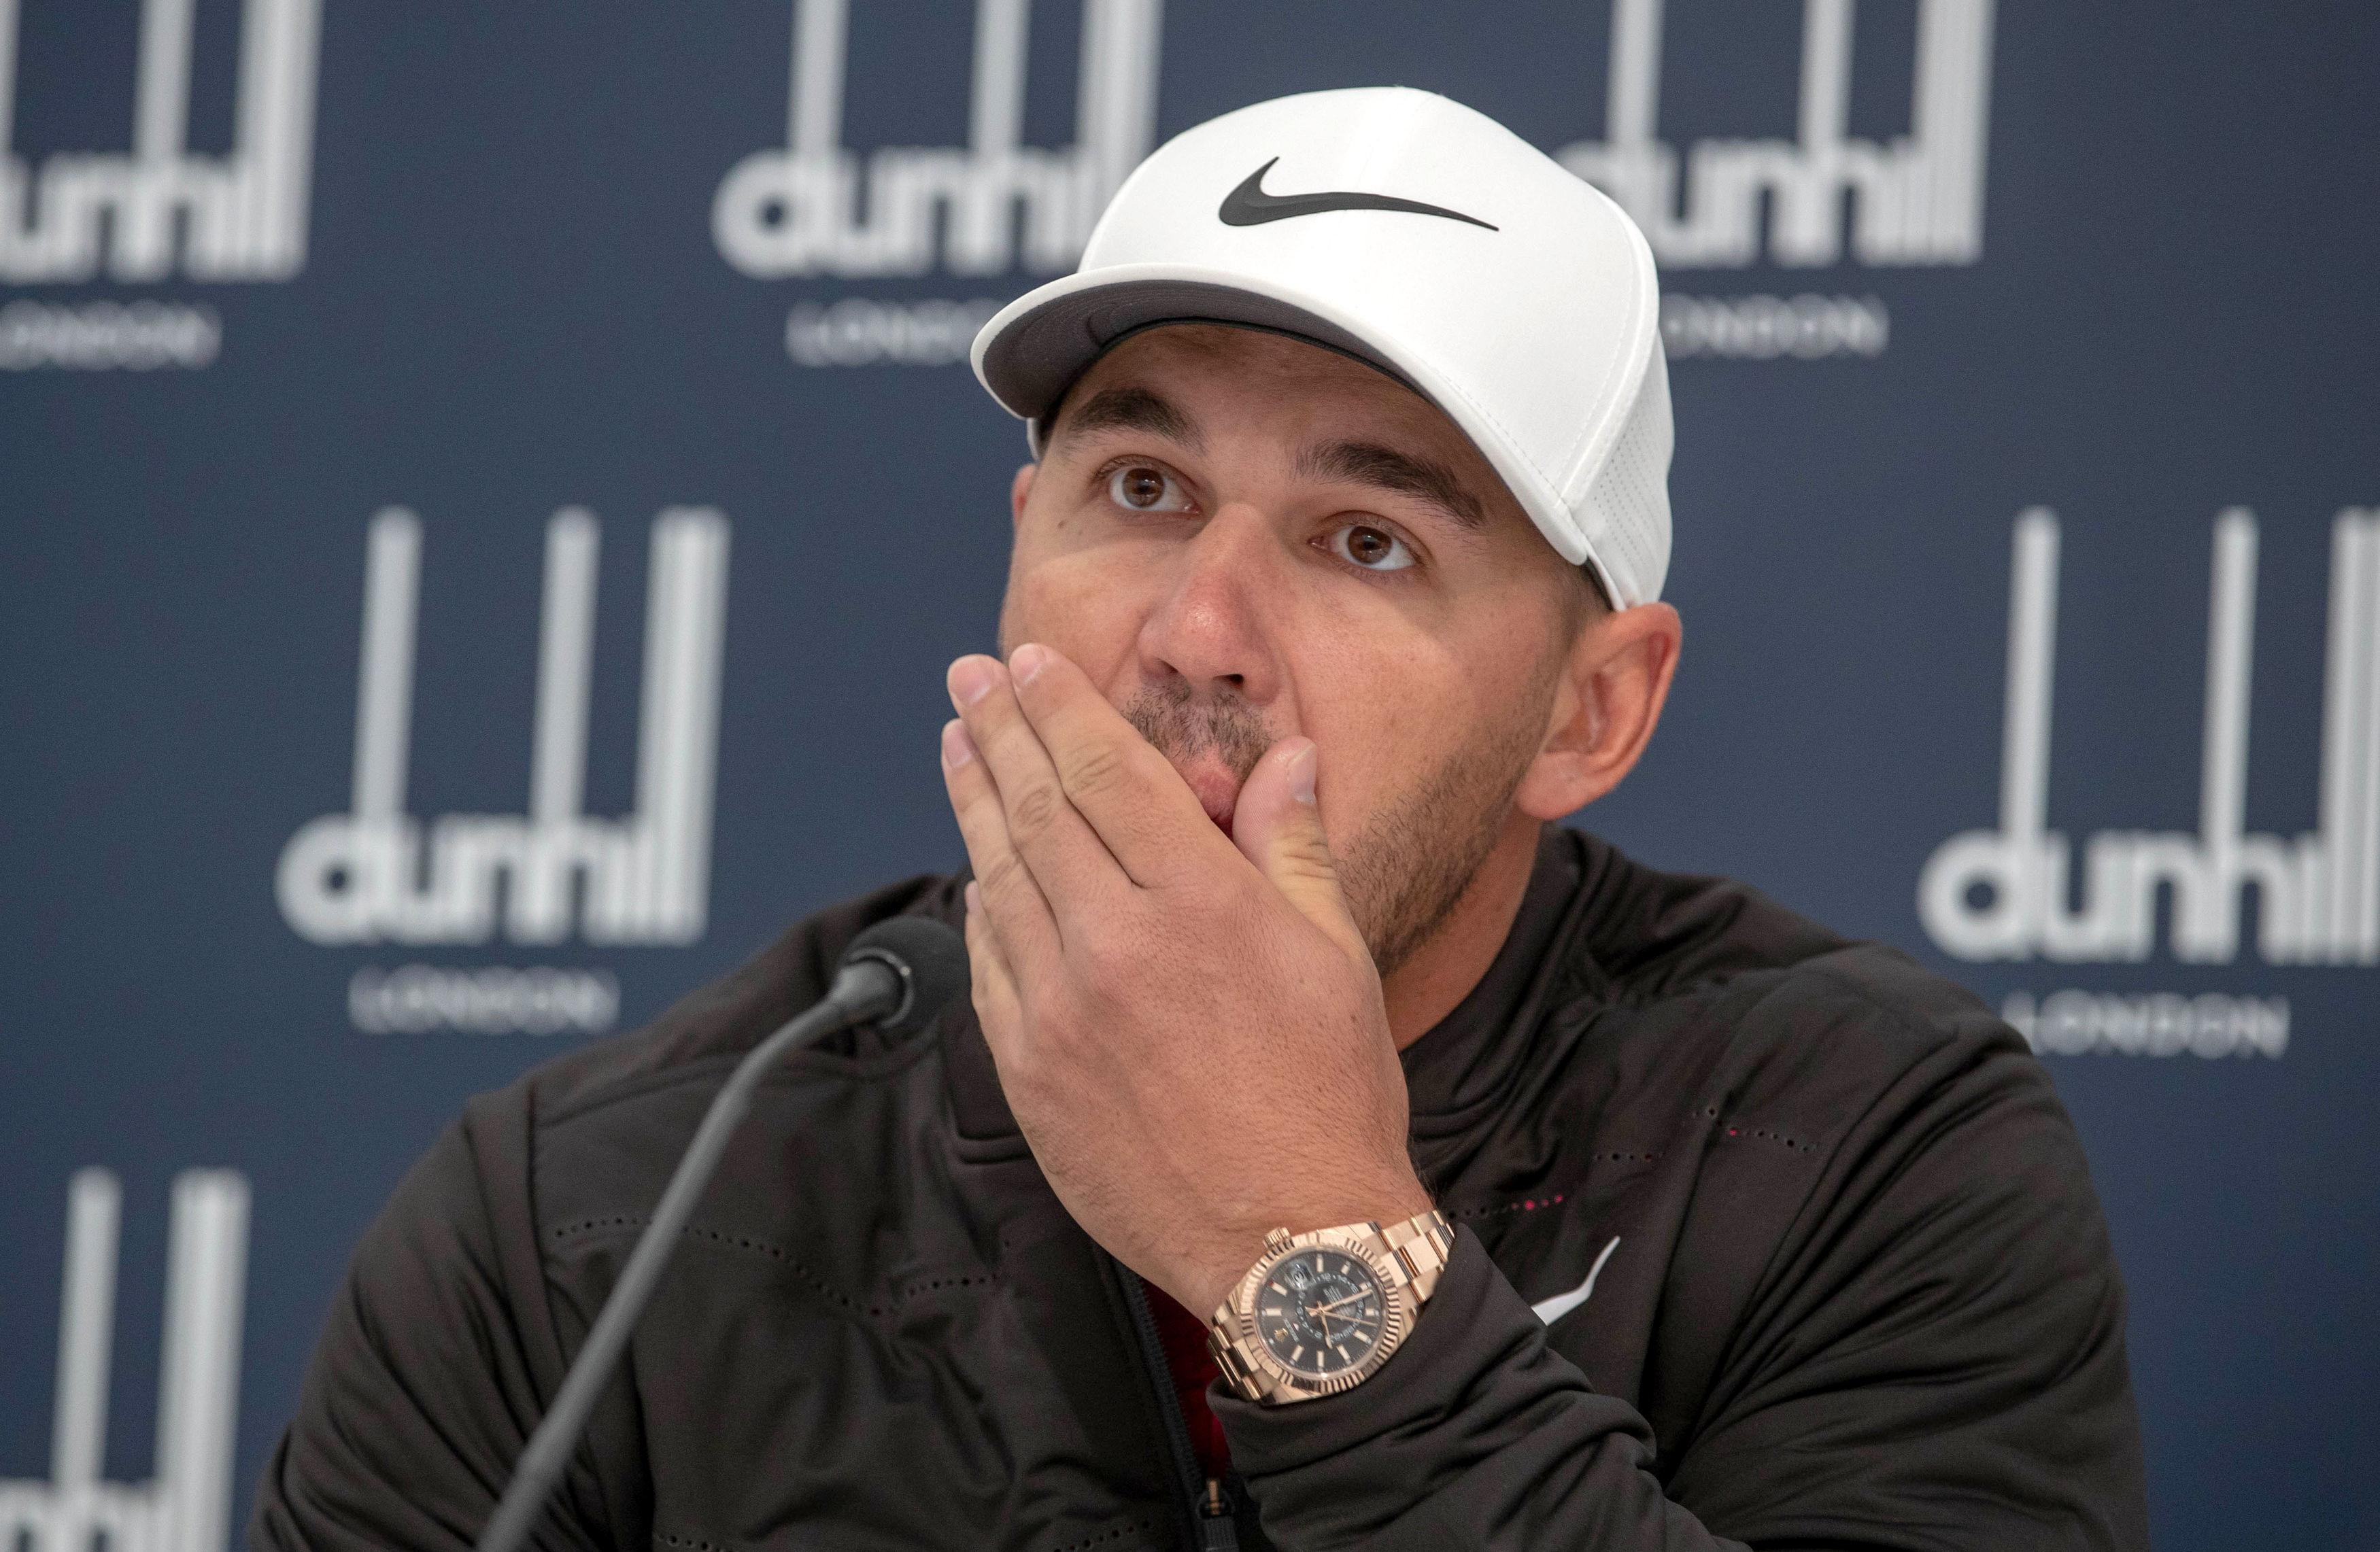 American golfer Brooks Koepka has expressed his grief after learning the fan he hit with a wayward tee shot has been left blind in her right eye